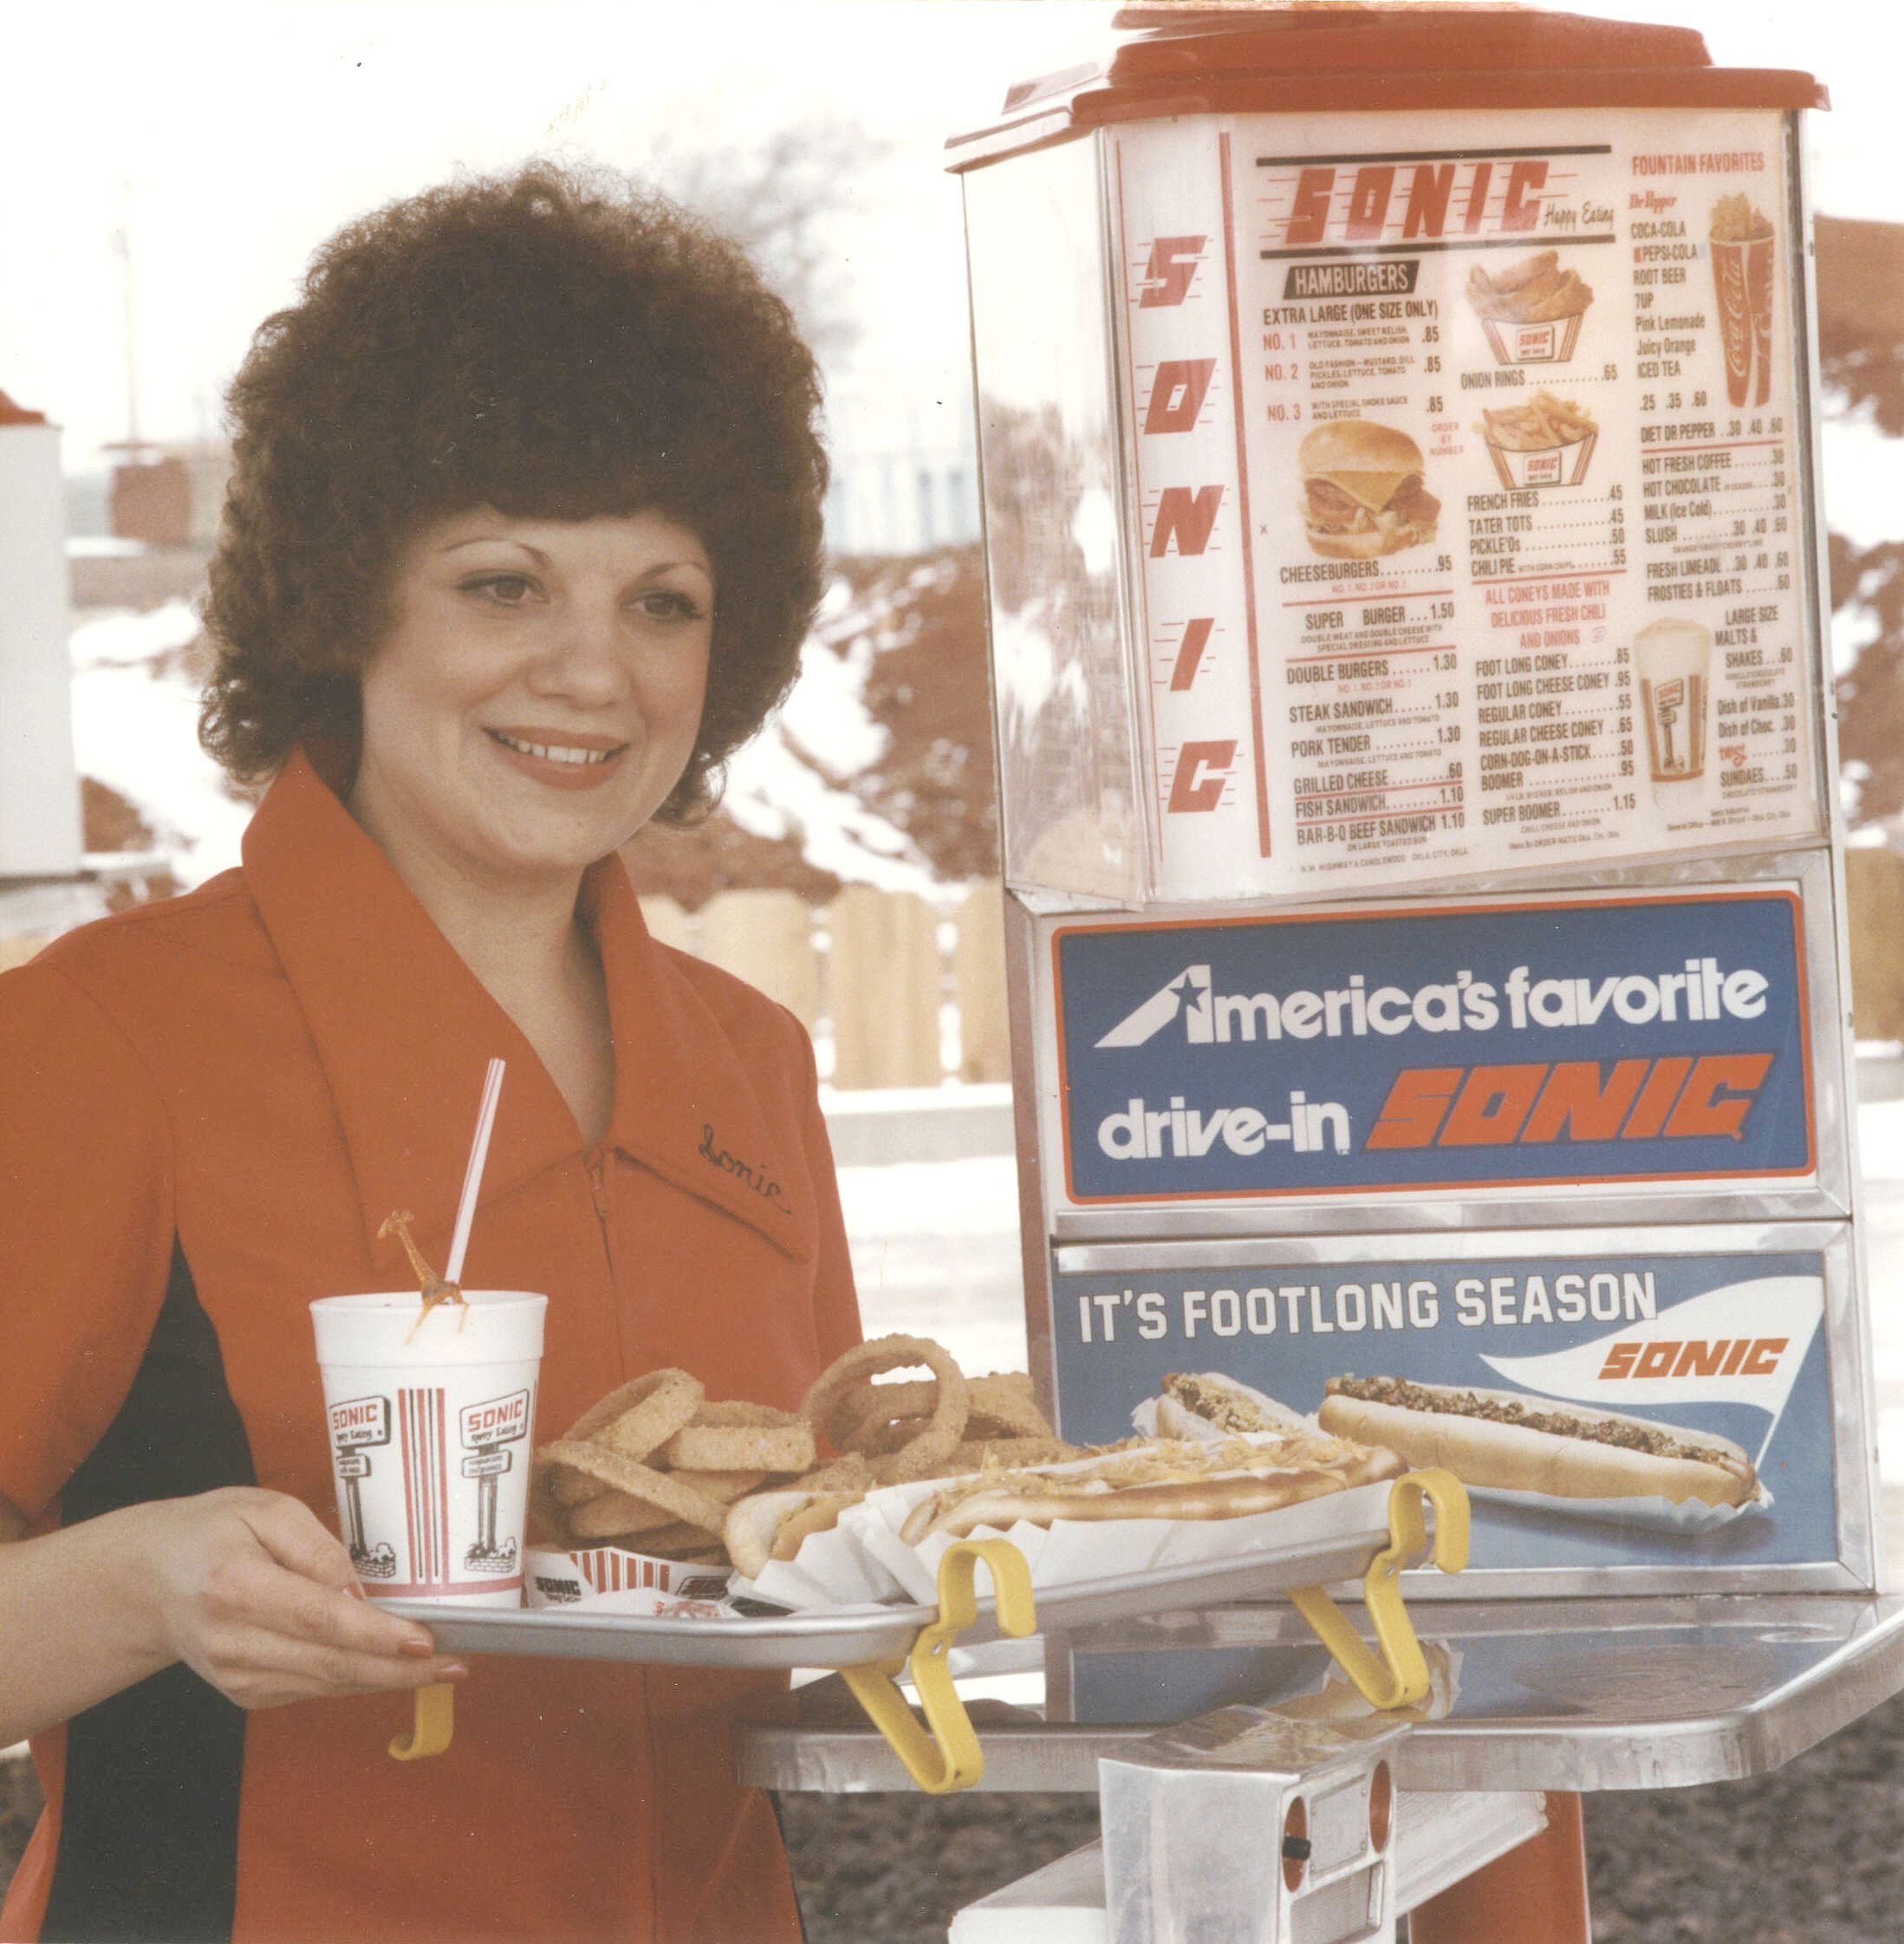 sonic carhops in a blast from the past carhop and menu board at sonic circa